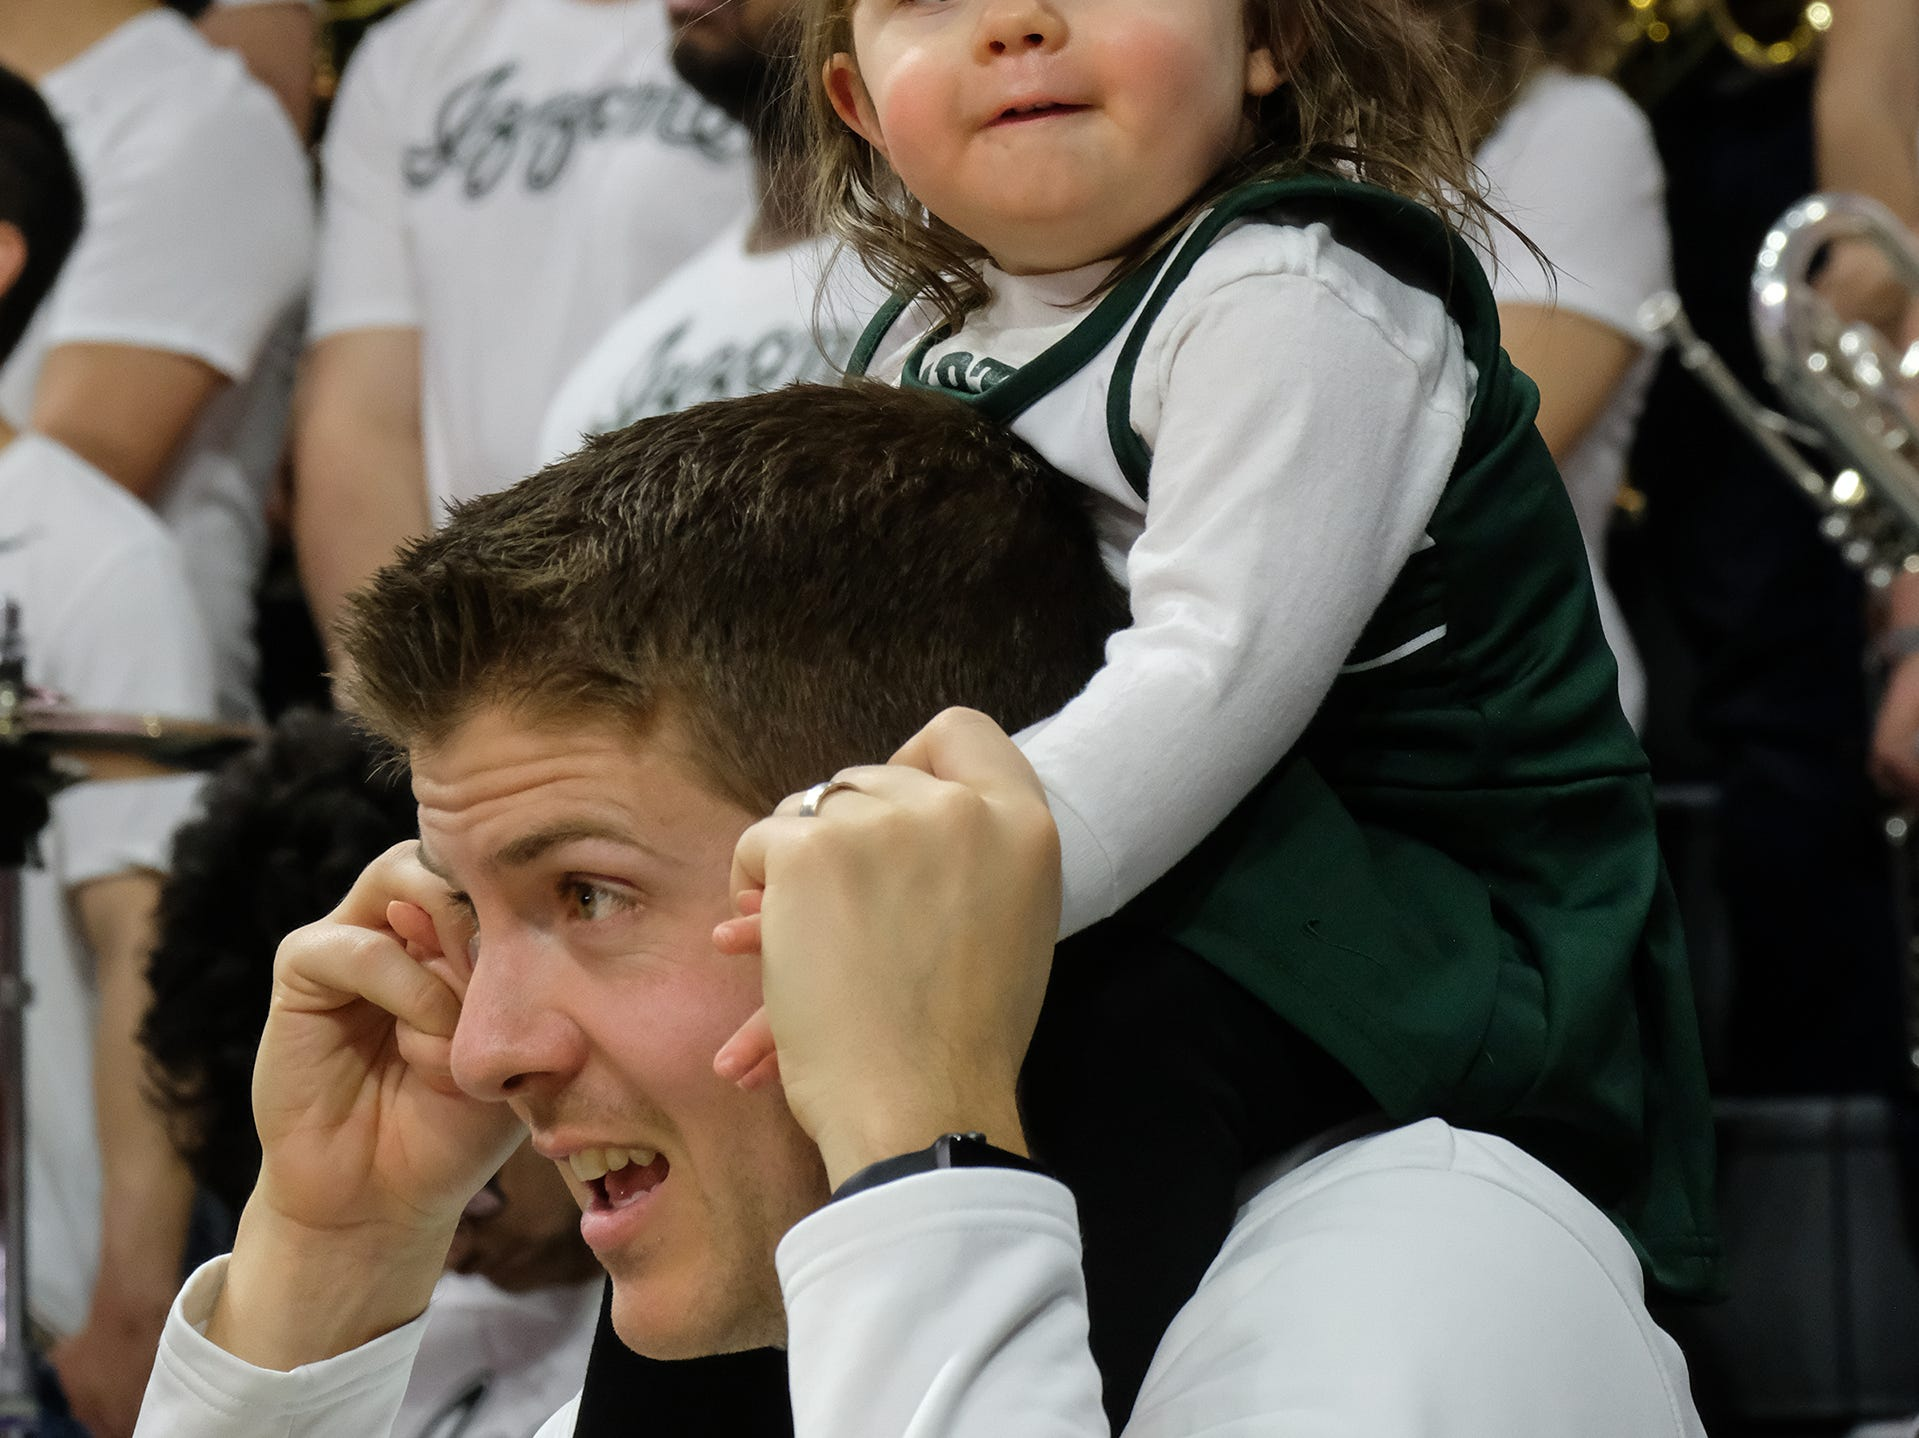 MSU Band Director with his 22-month-old daughter Taylor, have fun at the ESPN College GameDay broadcast at the Breslin Center Saturday, Feb. 2, 2019.